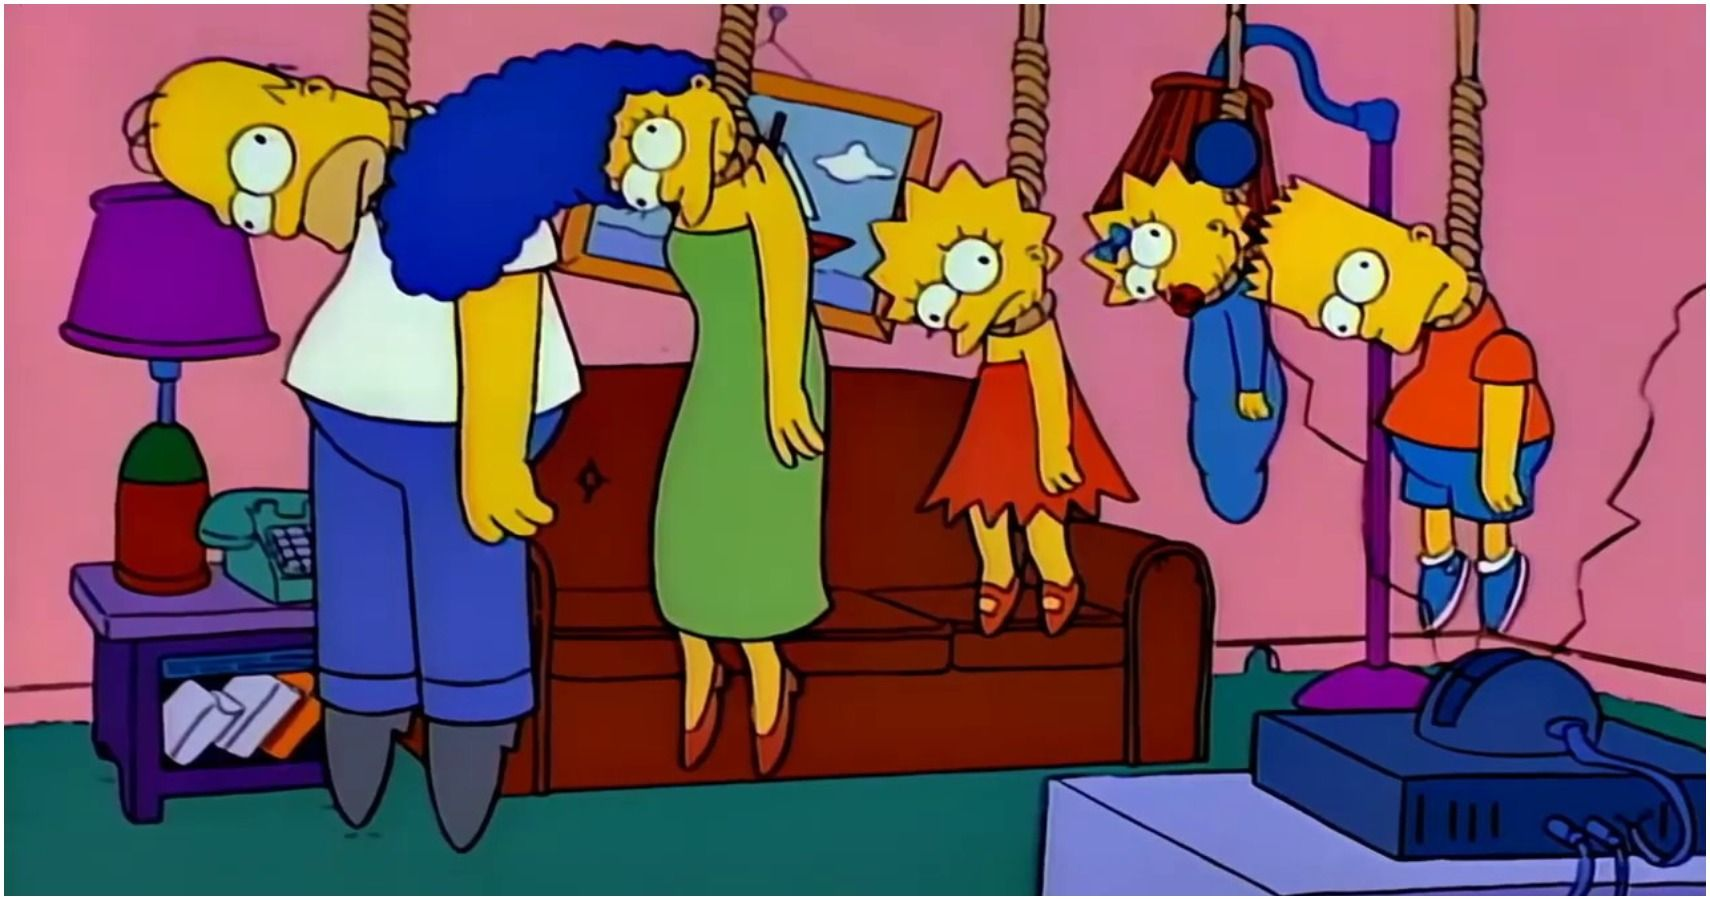 The Simpsons 10 Treehouse Of Horror Skits That Are Way Too Dark